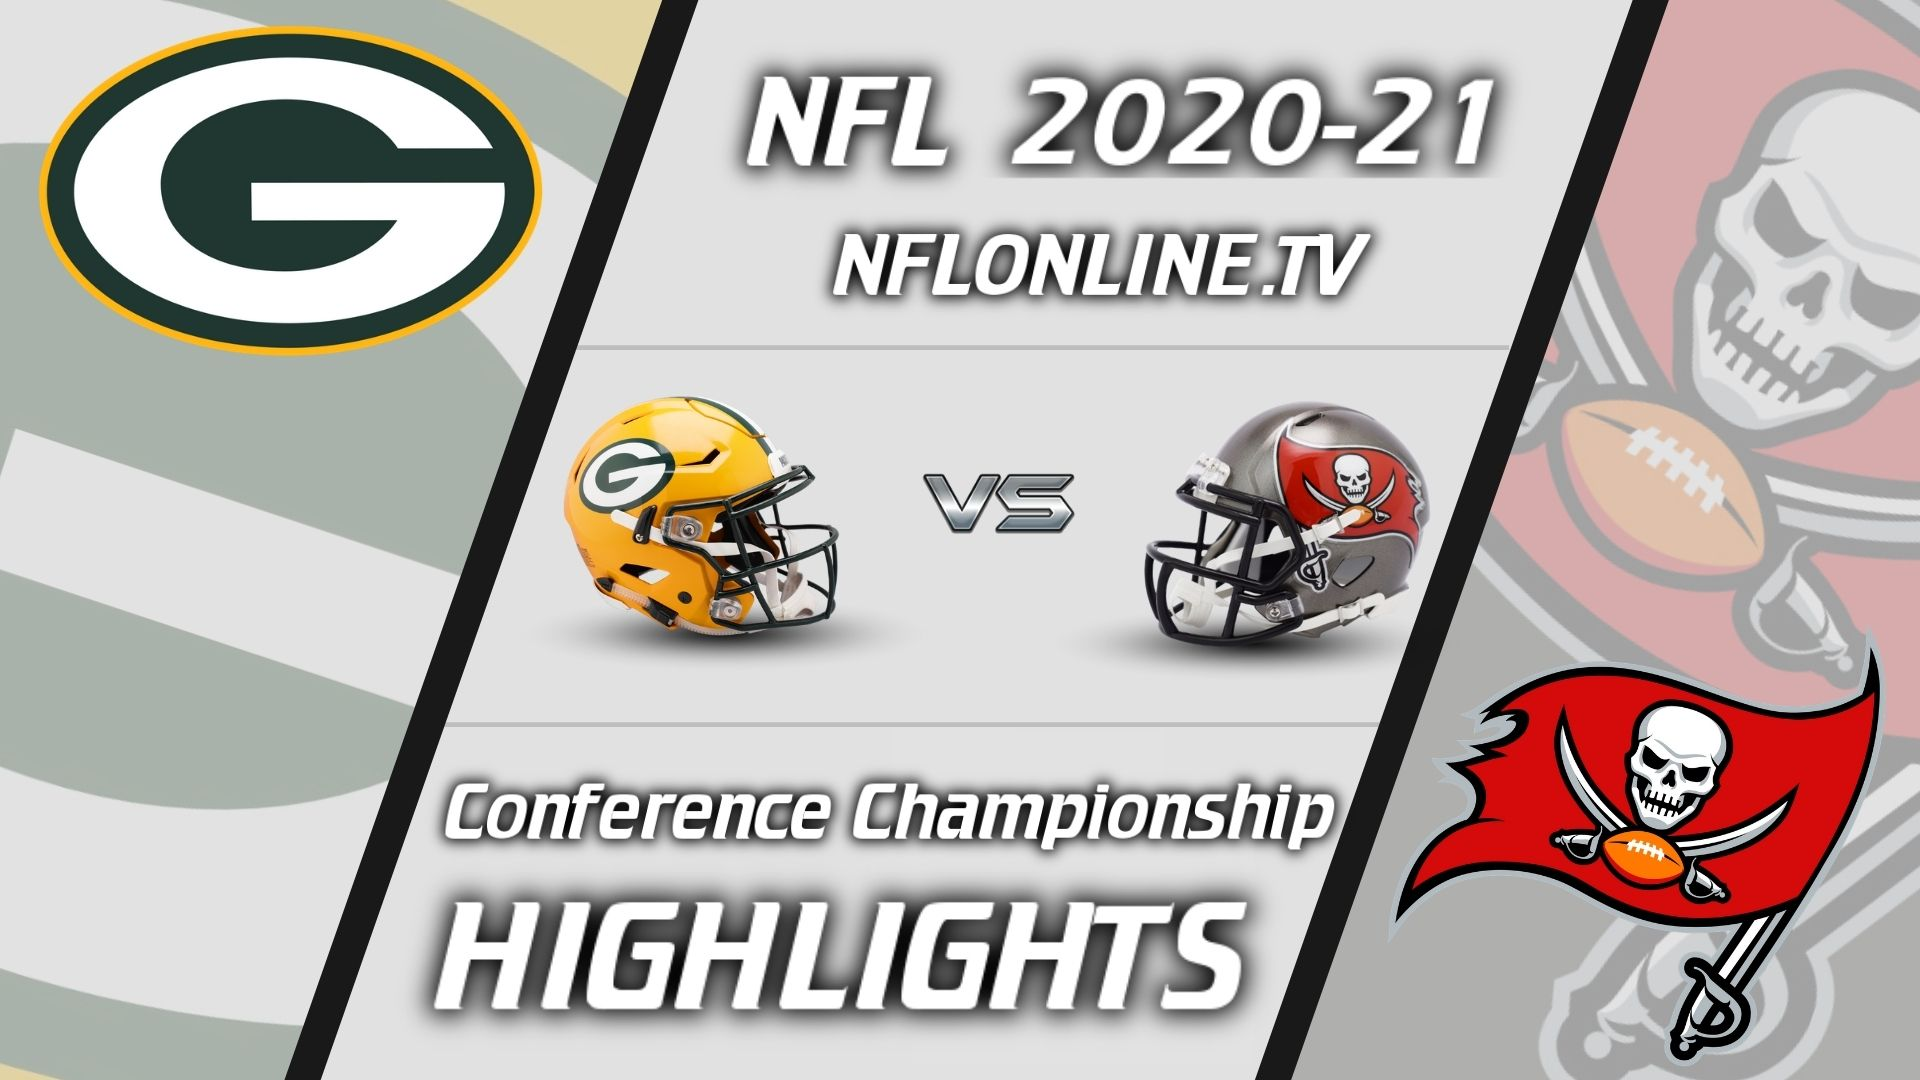 Packers Vs Buccaneers Highlights 2021 NFL Championship